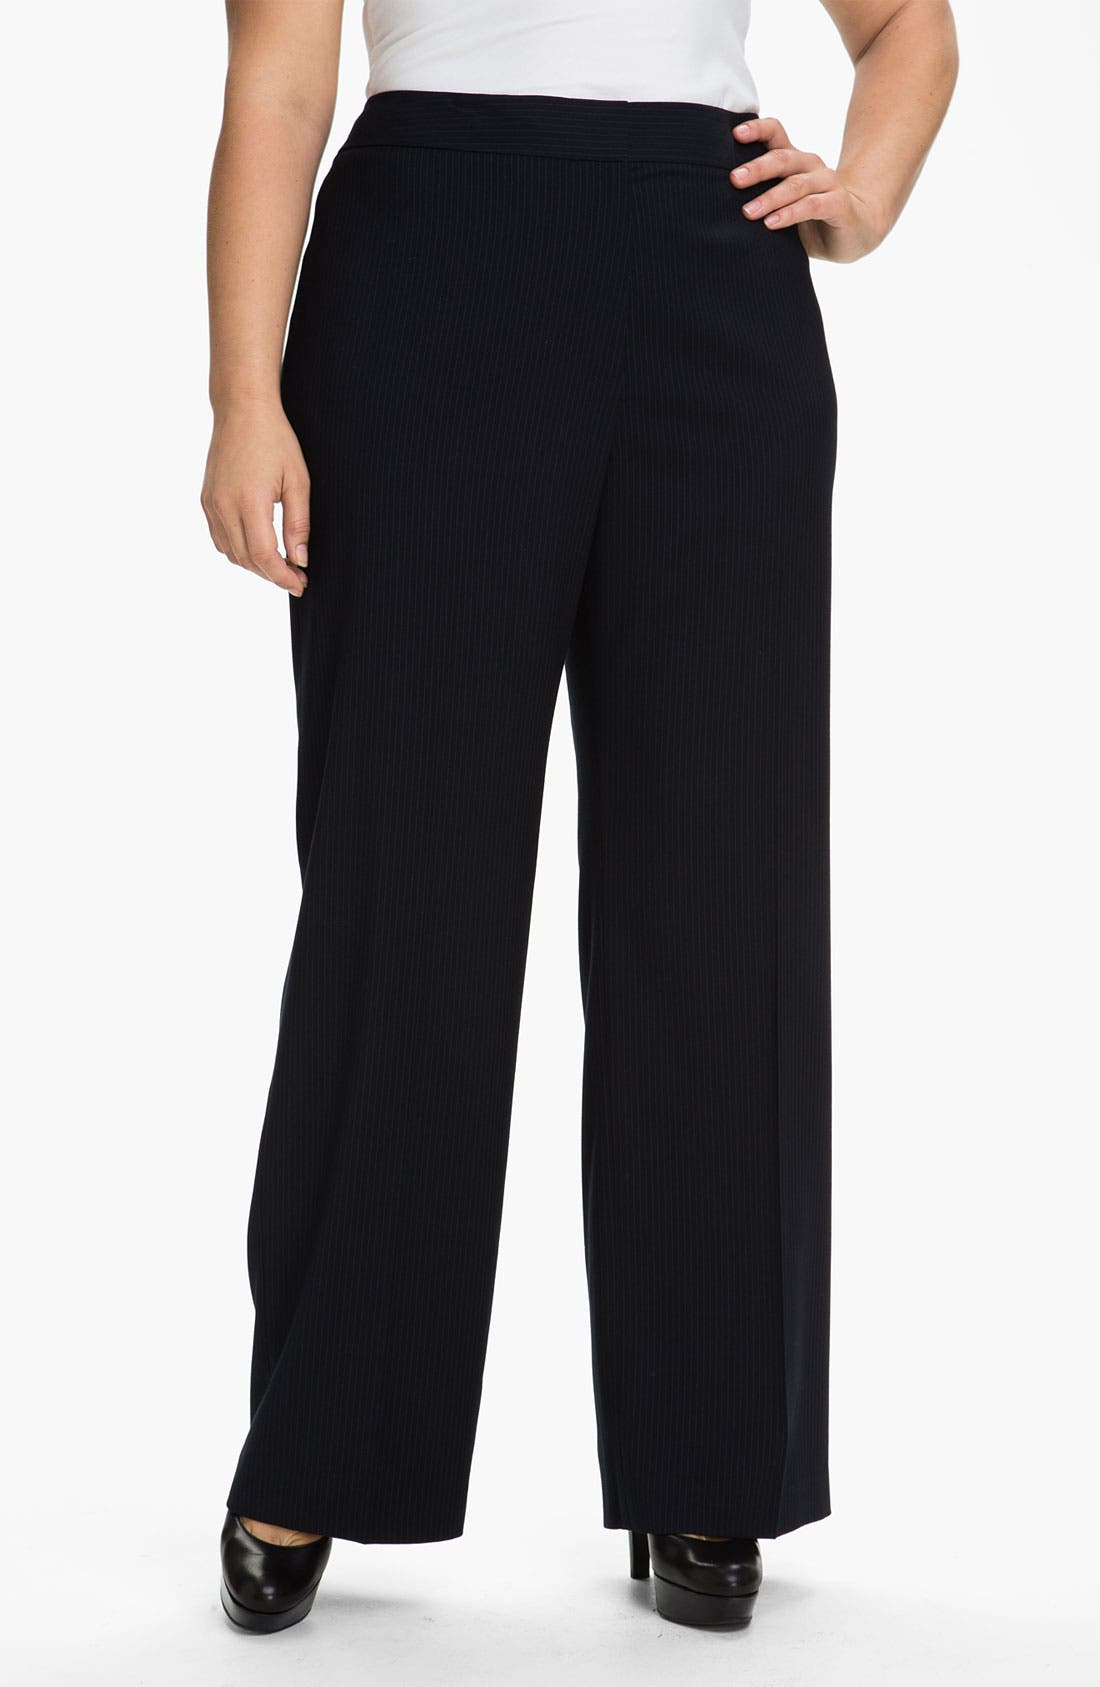 Main Image - Tahari Woman 'Hazel' Straight Leg Pants (Plus)